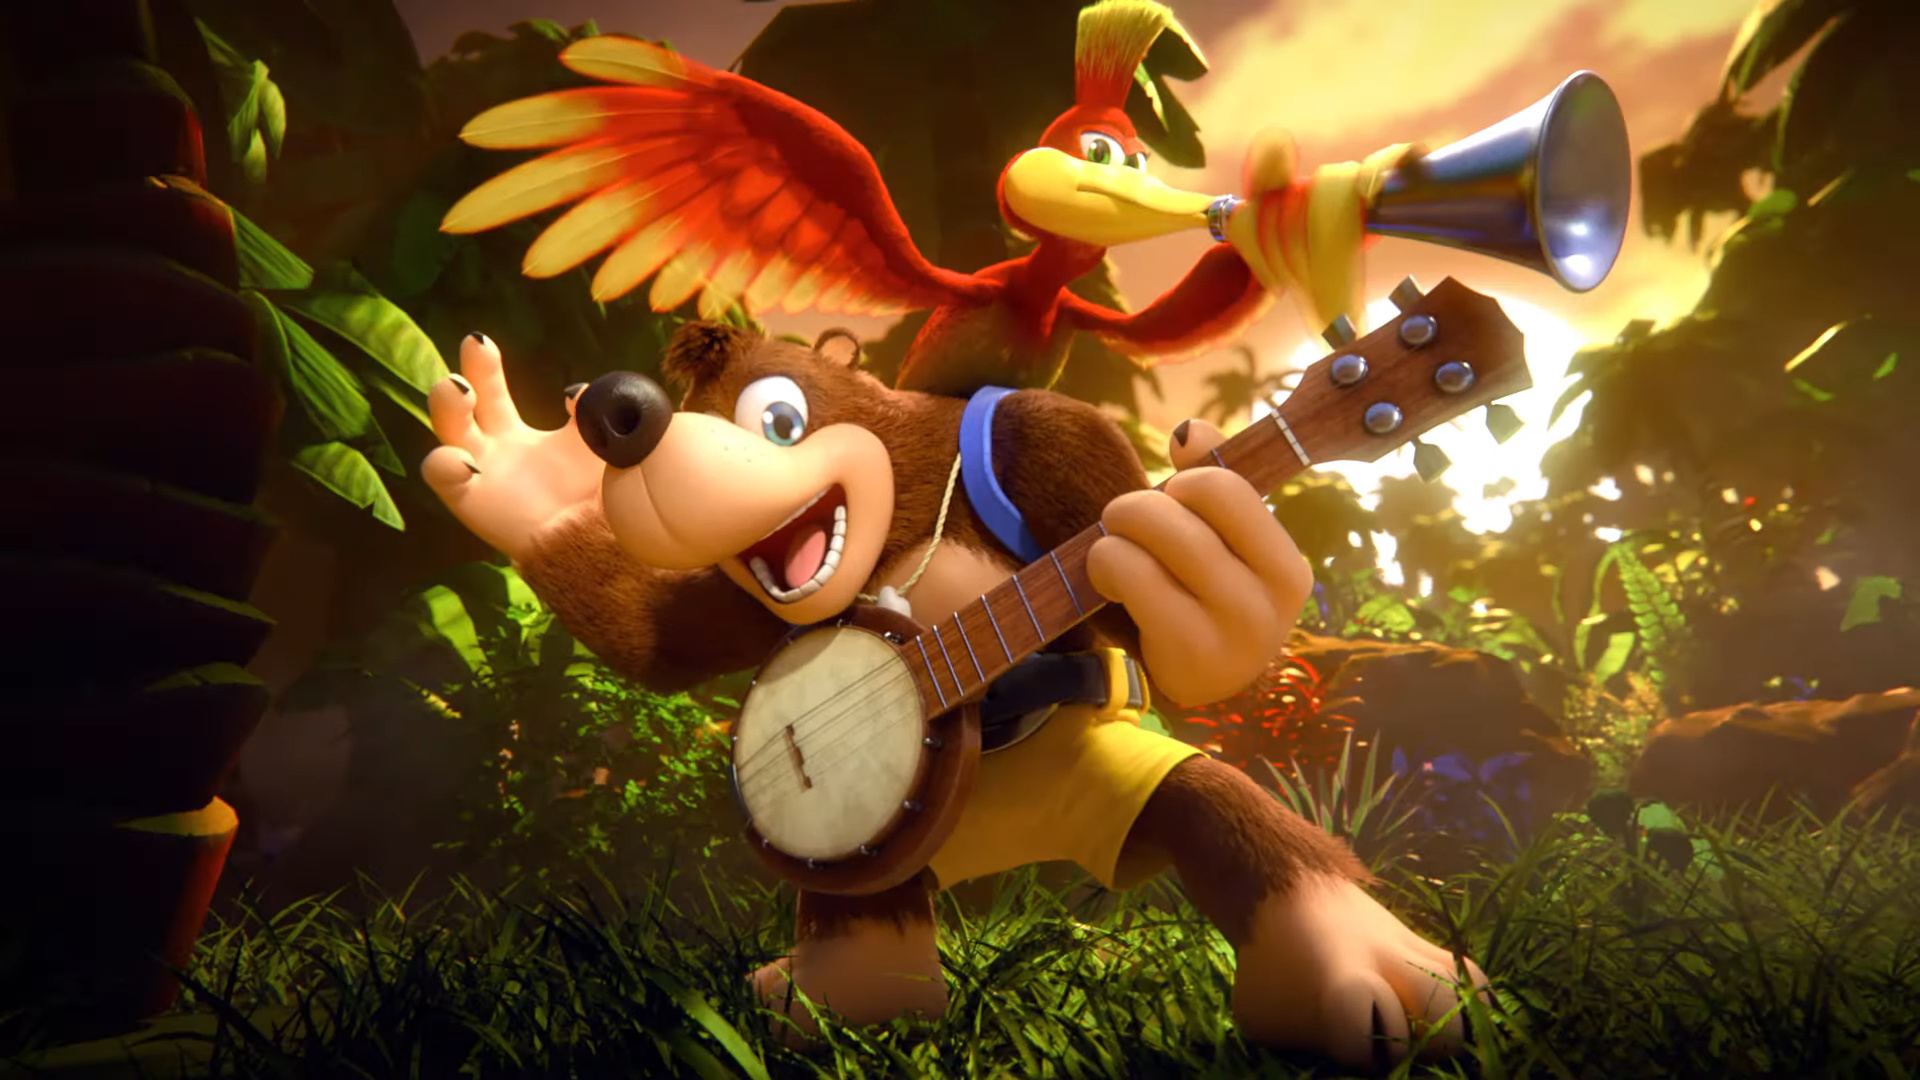 Banjo-Kazooie Store Ads Suggest Smash Bros. Ultimate Release Could Be Imminent